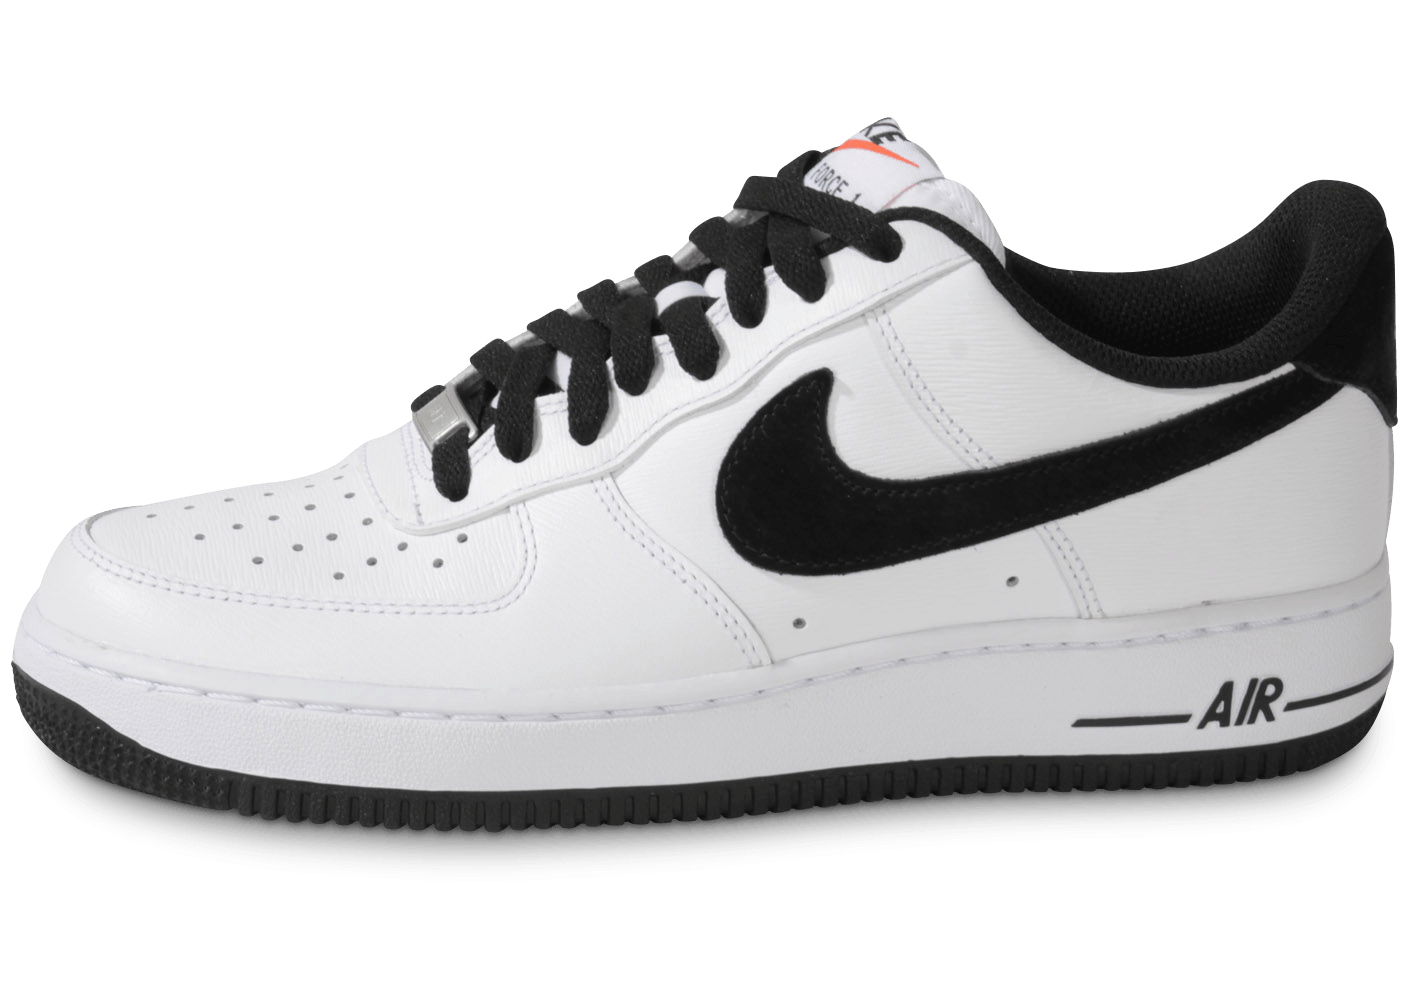 soldes Nike Air Force 1 Low Homme Blanc Noir agrave Vendre YR14900 f7f92a7cf3e3